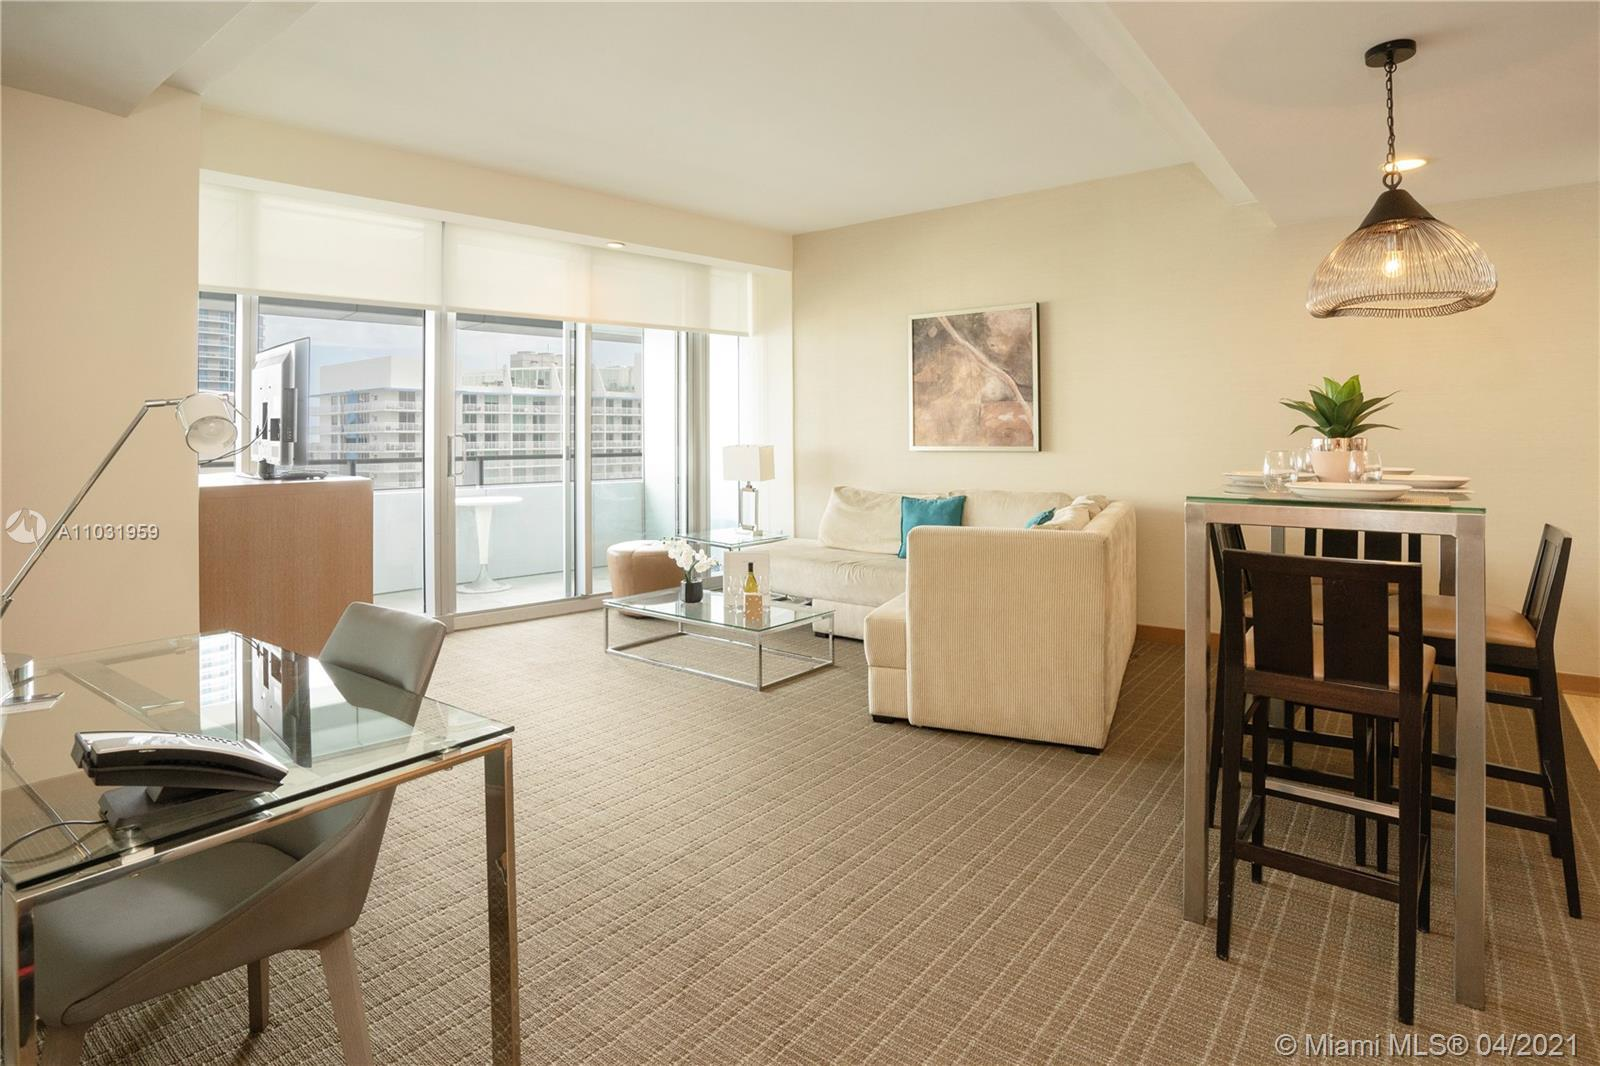 Conrad Miami Residence 1 Bedroom 1 bath breathtaking views of Brickell Skyline and of The Bay